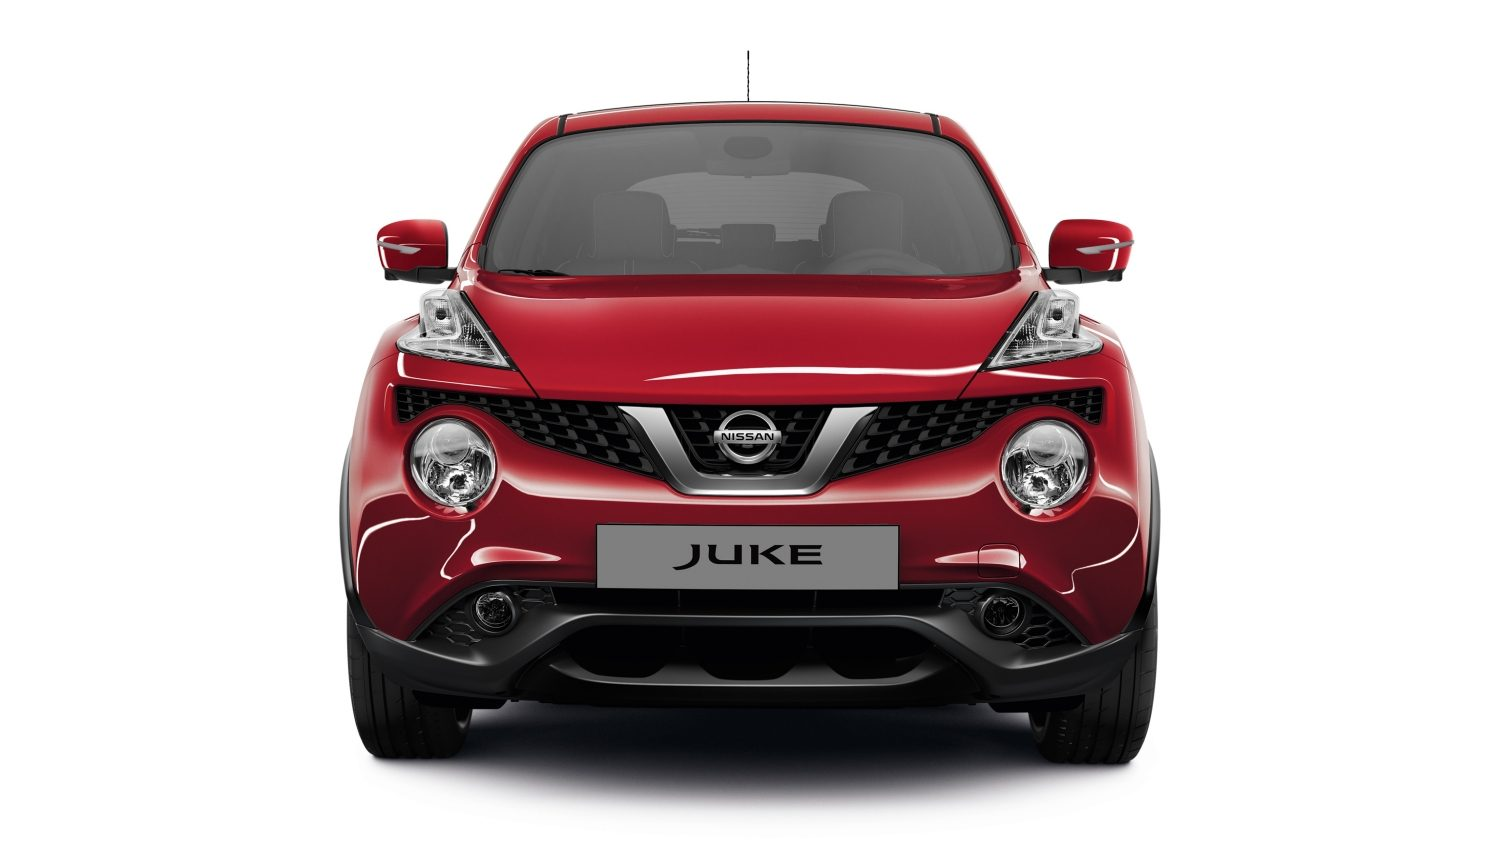 Nissan Juke cross over– Udvendigt design – Kølergrill